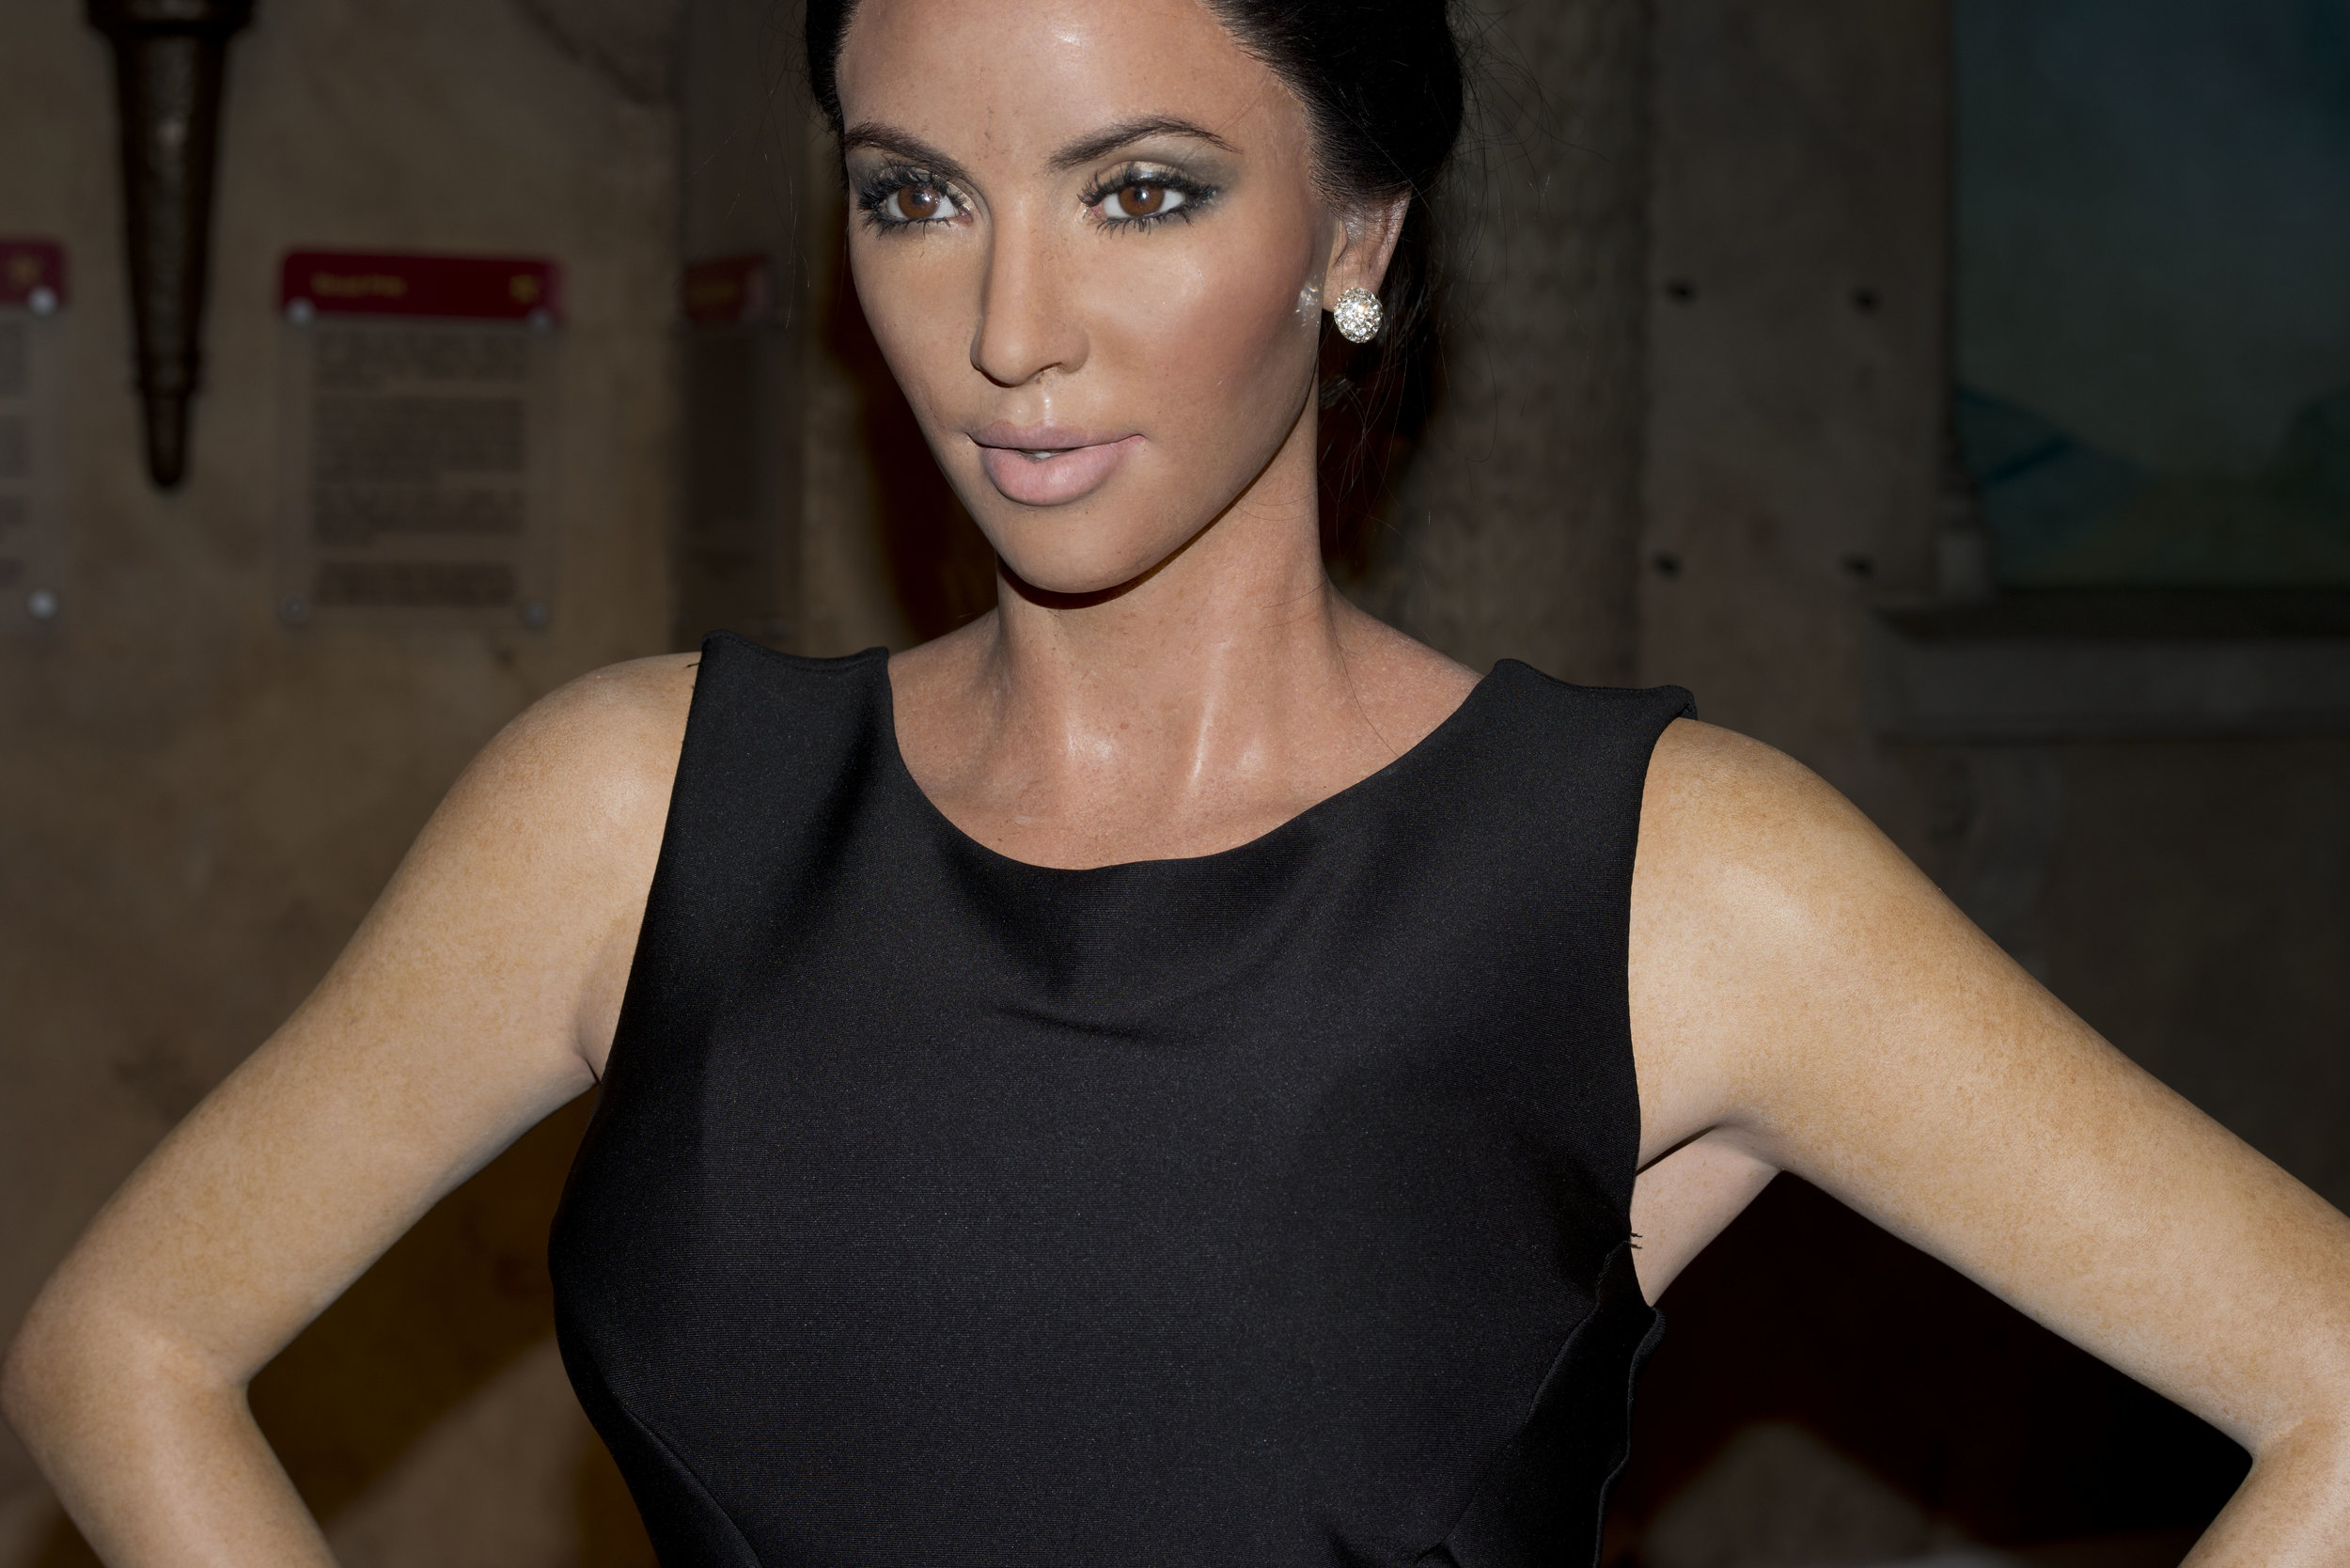 Kim Kardashian at Madame Tussauds Wax Museum, New York City